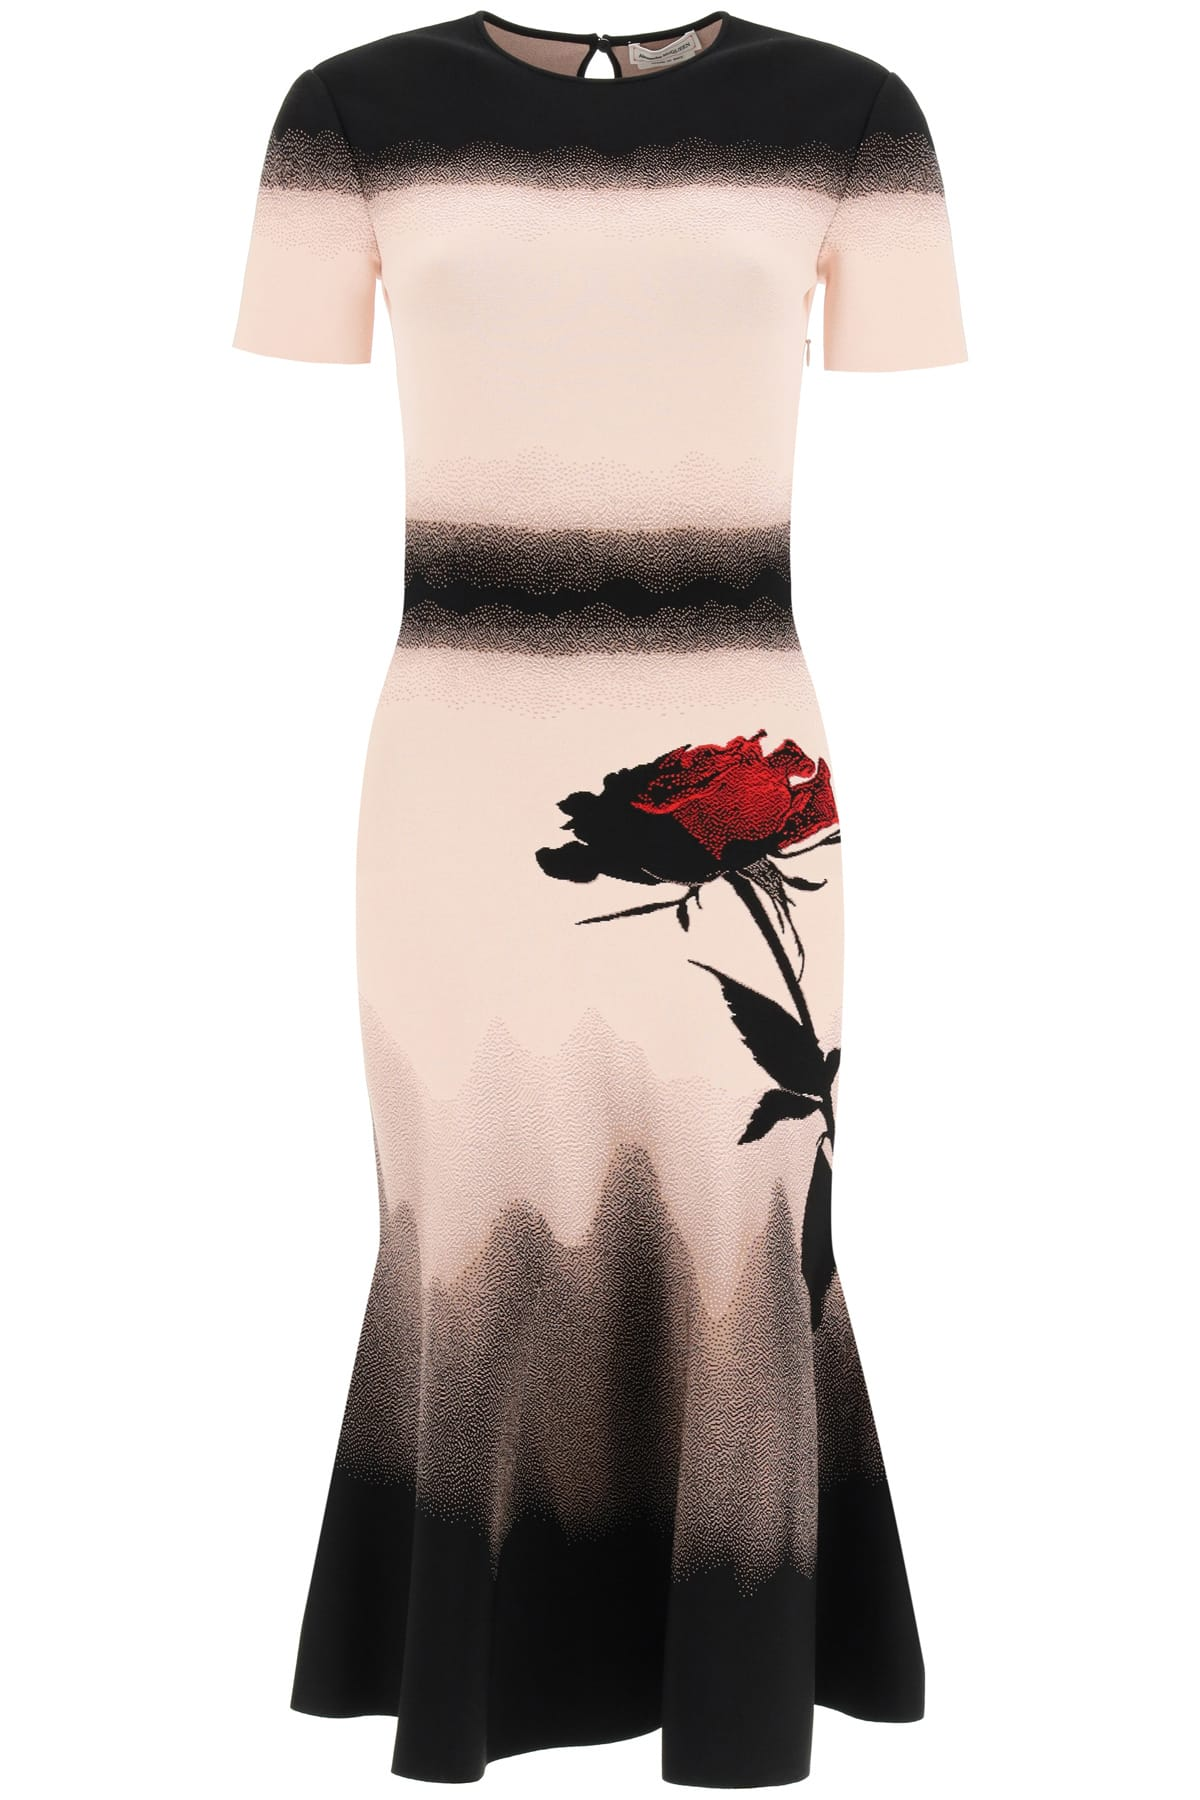 ALEXANDER MCQUEEN KNIT MIDI DRESS WITH ROSE S Pink, Black, Red